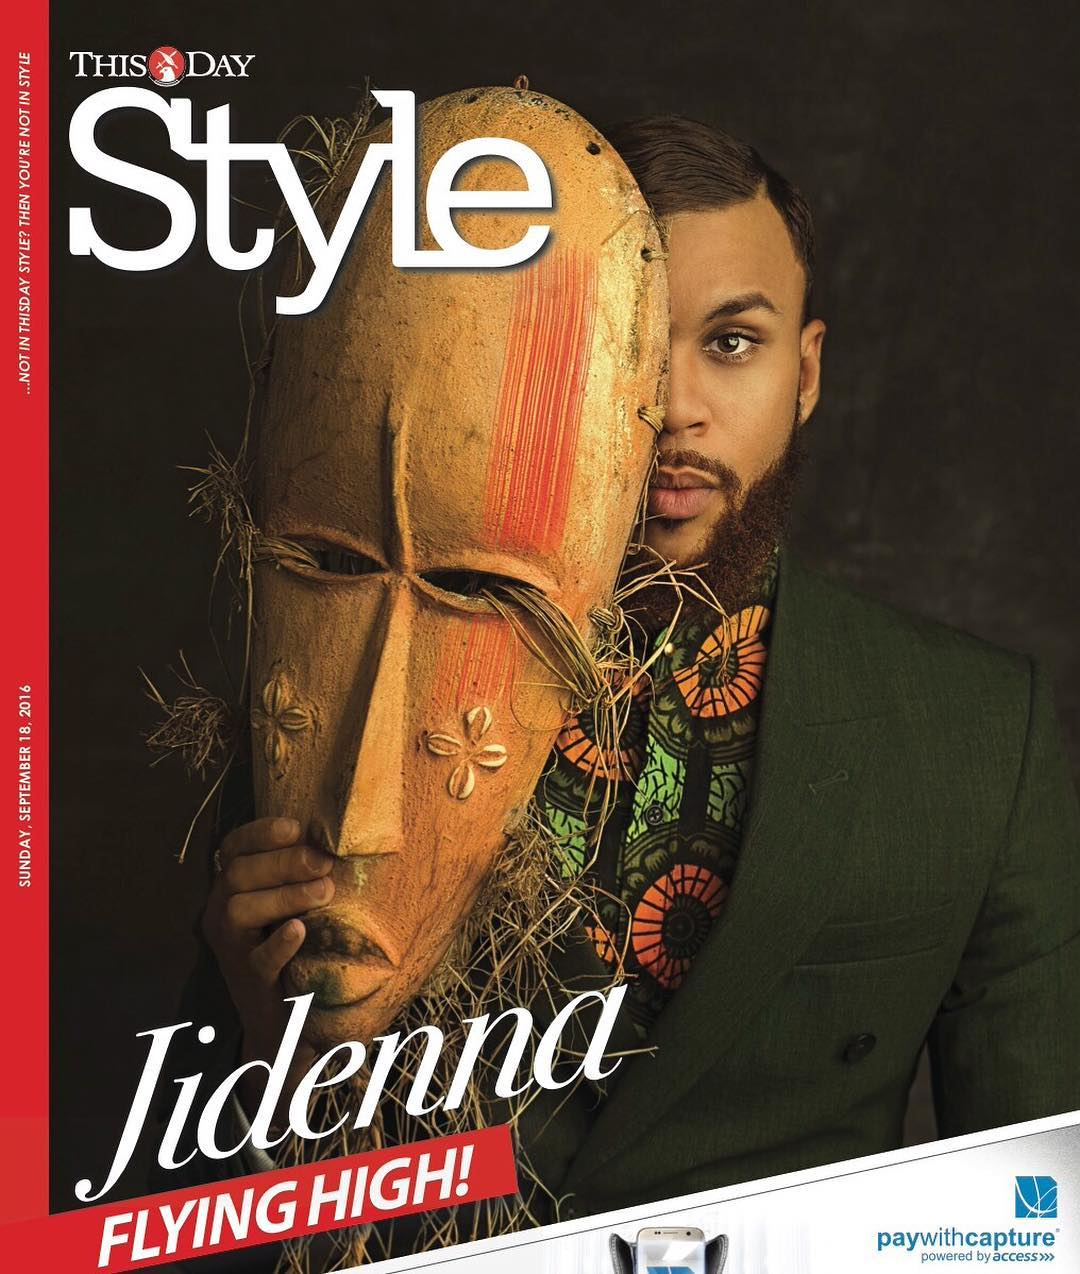 magazine-jidenna-for-thisday-style-magazine-by-ty-bello-1